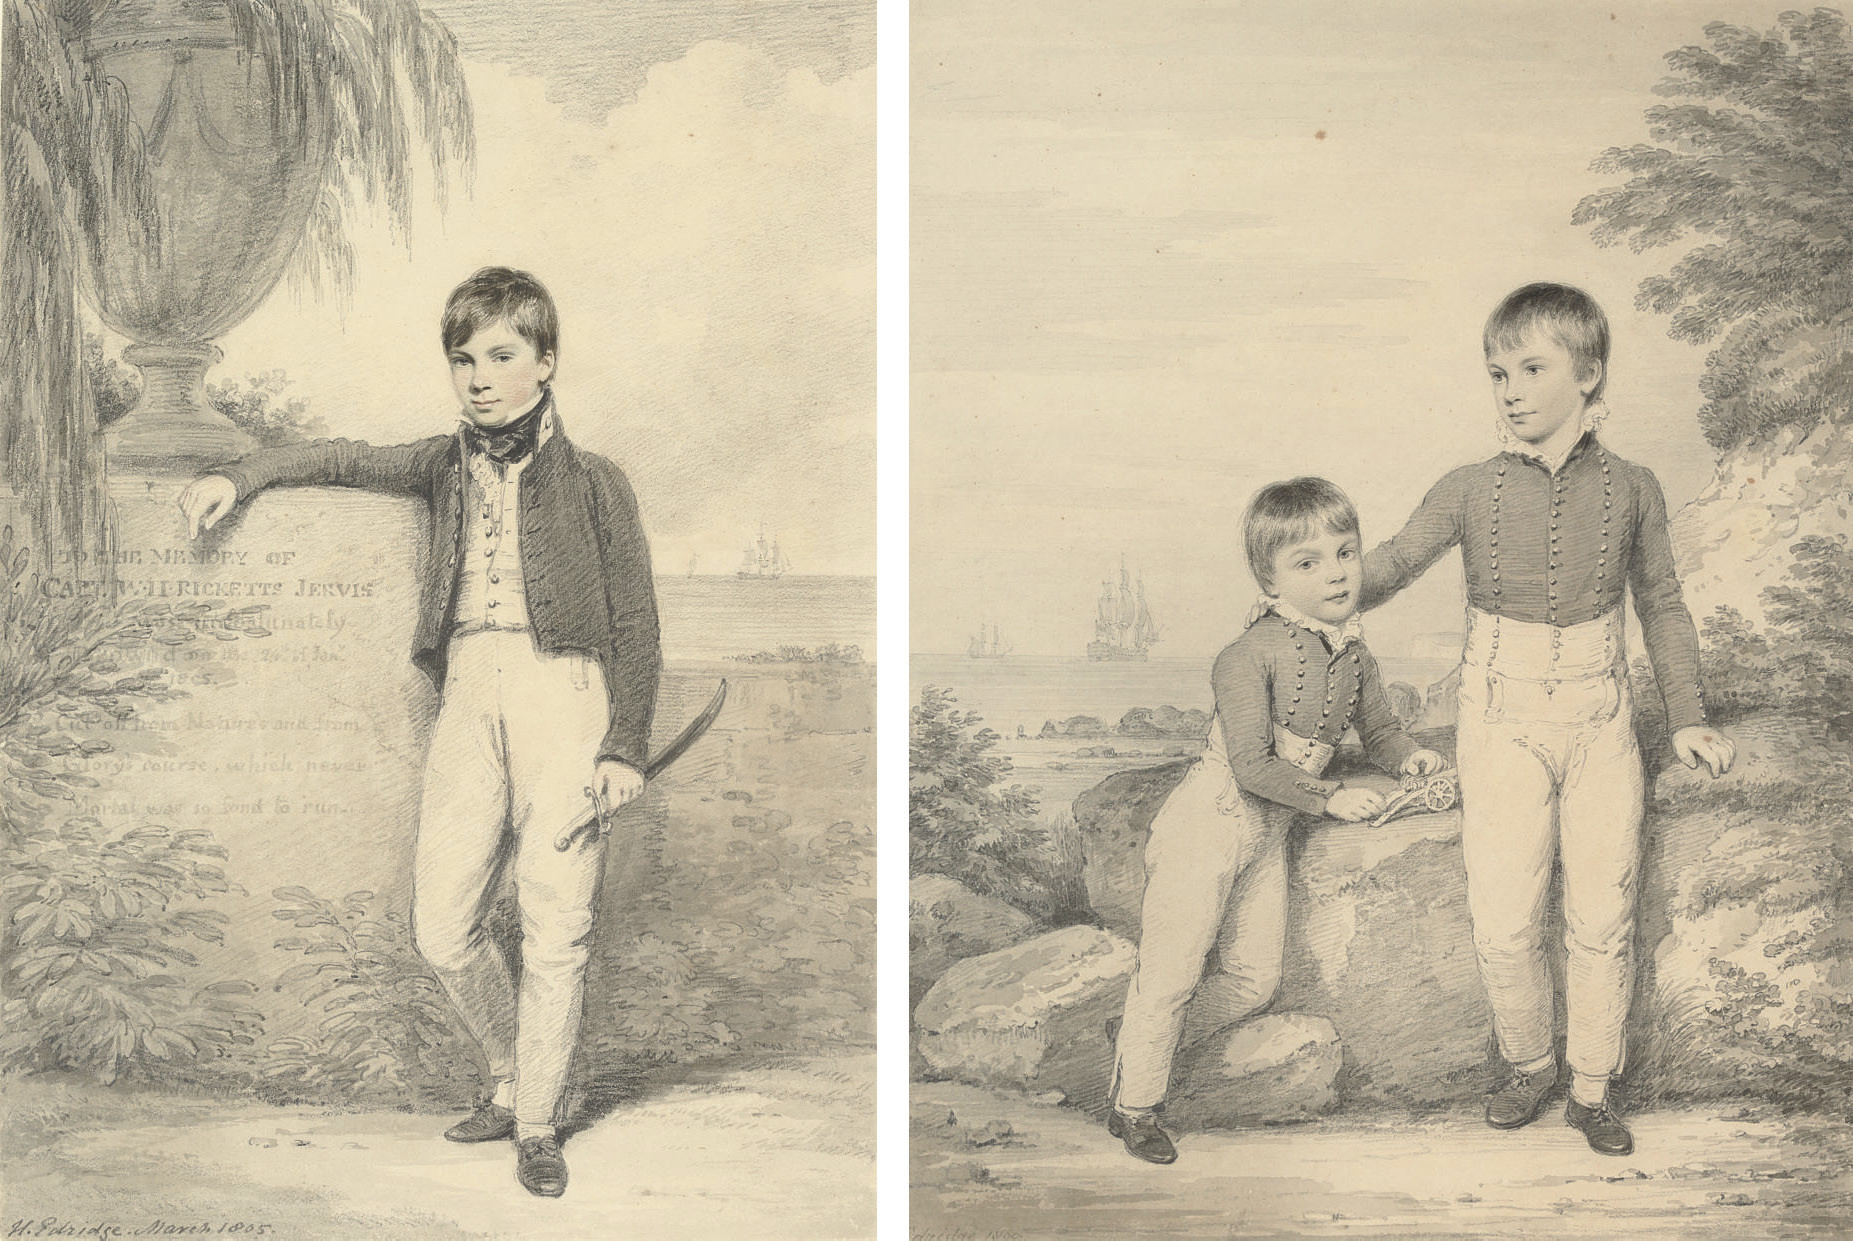 Portrait of George Carnegie, Lord Rosehill, small full-length, his right arm resting on a plinth; and Double portrait of George Carnegie, Lord Rosehill, aged nine, with his brother the Hon. William Hopetoun Carnegie, aged six, full-length, playing with a toy cannon, with ships at sea beyond